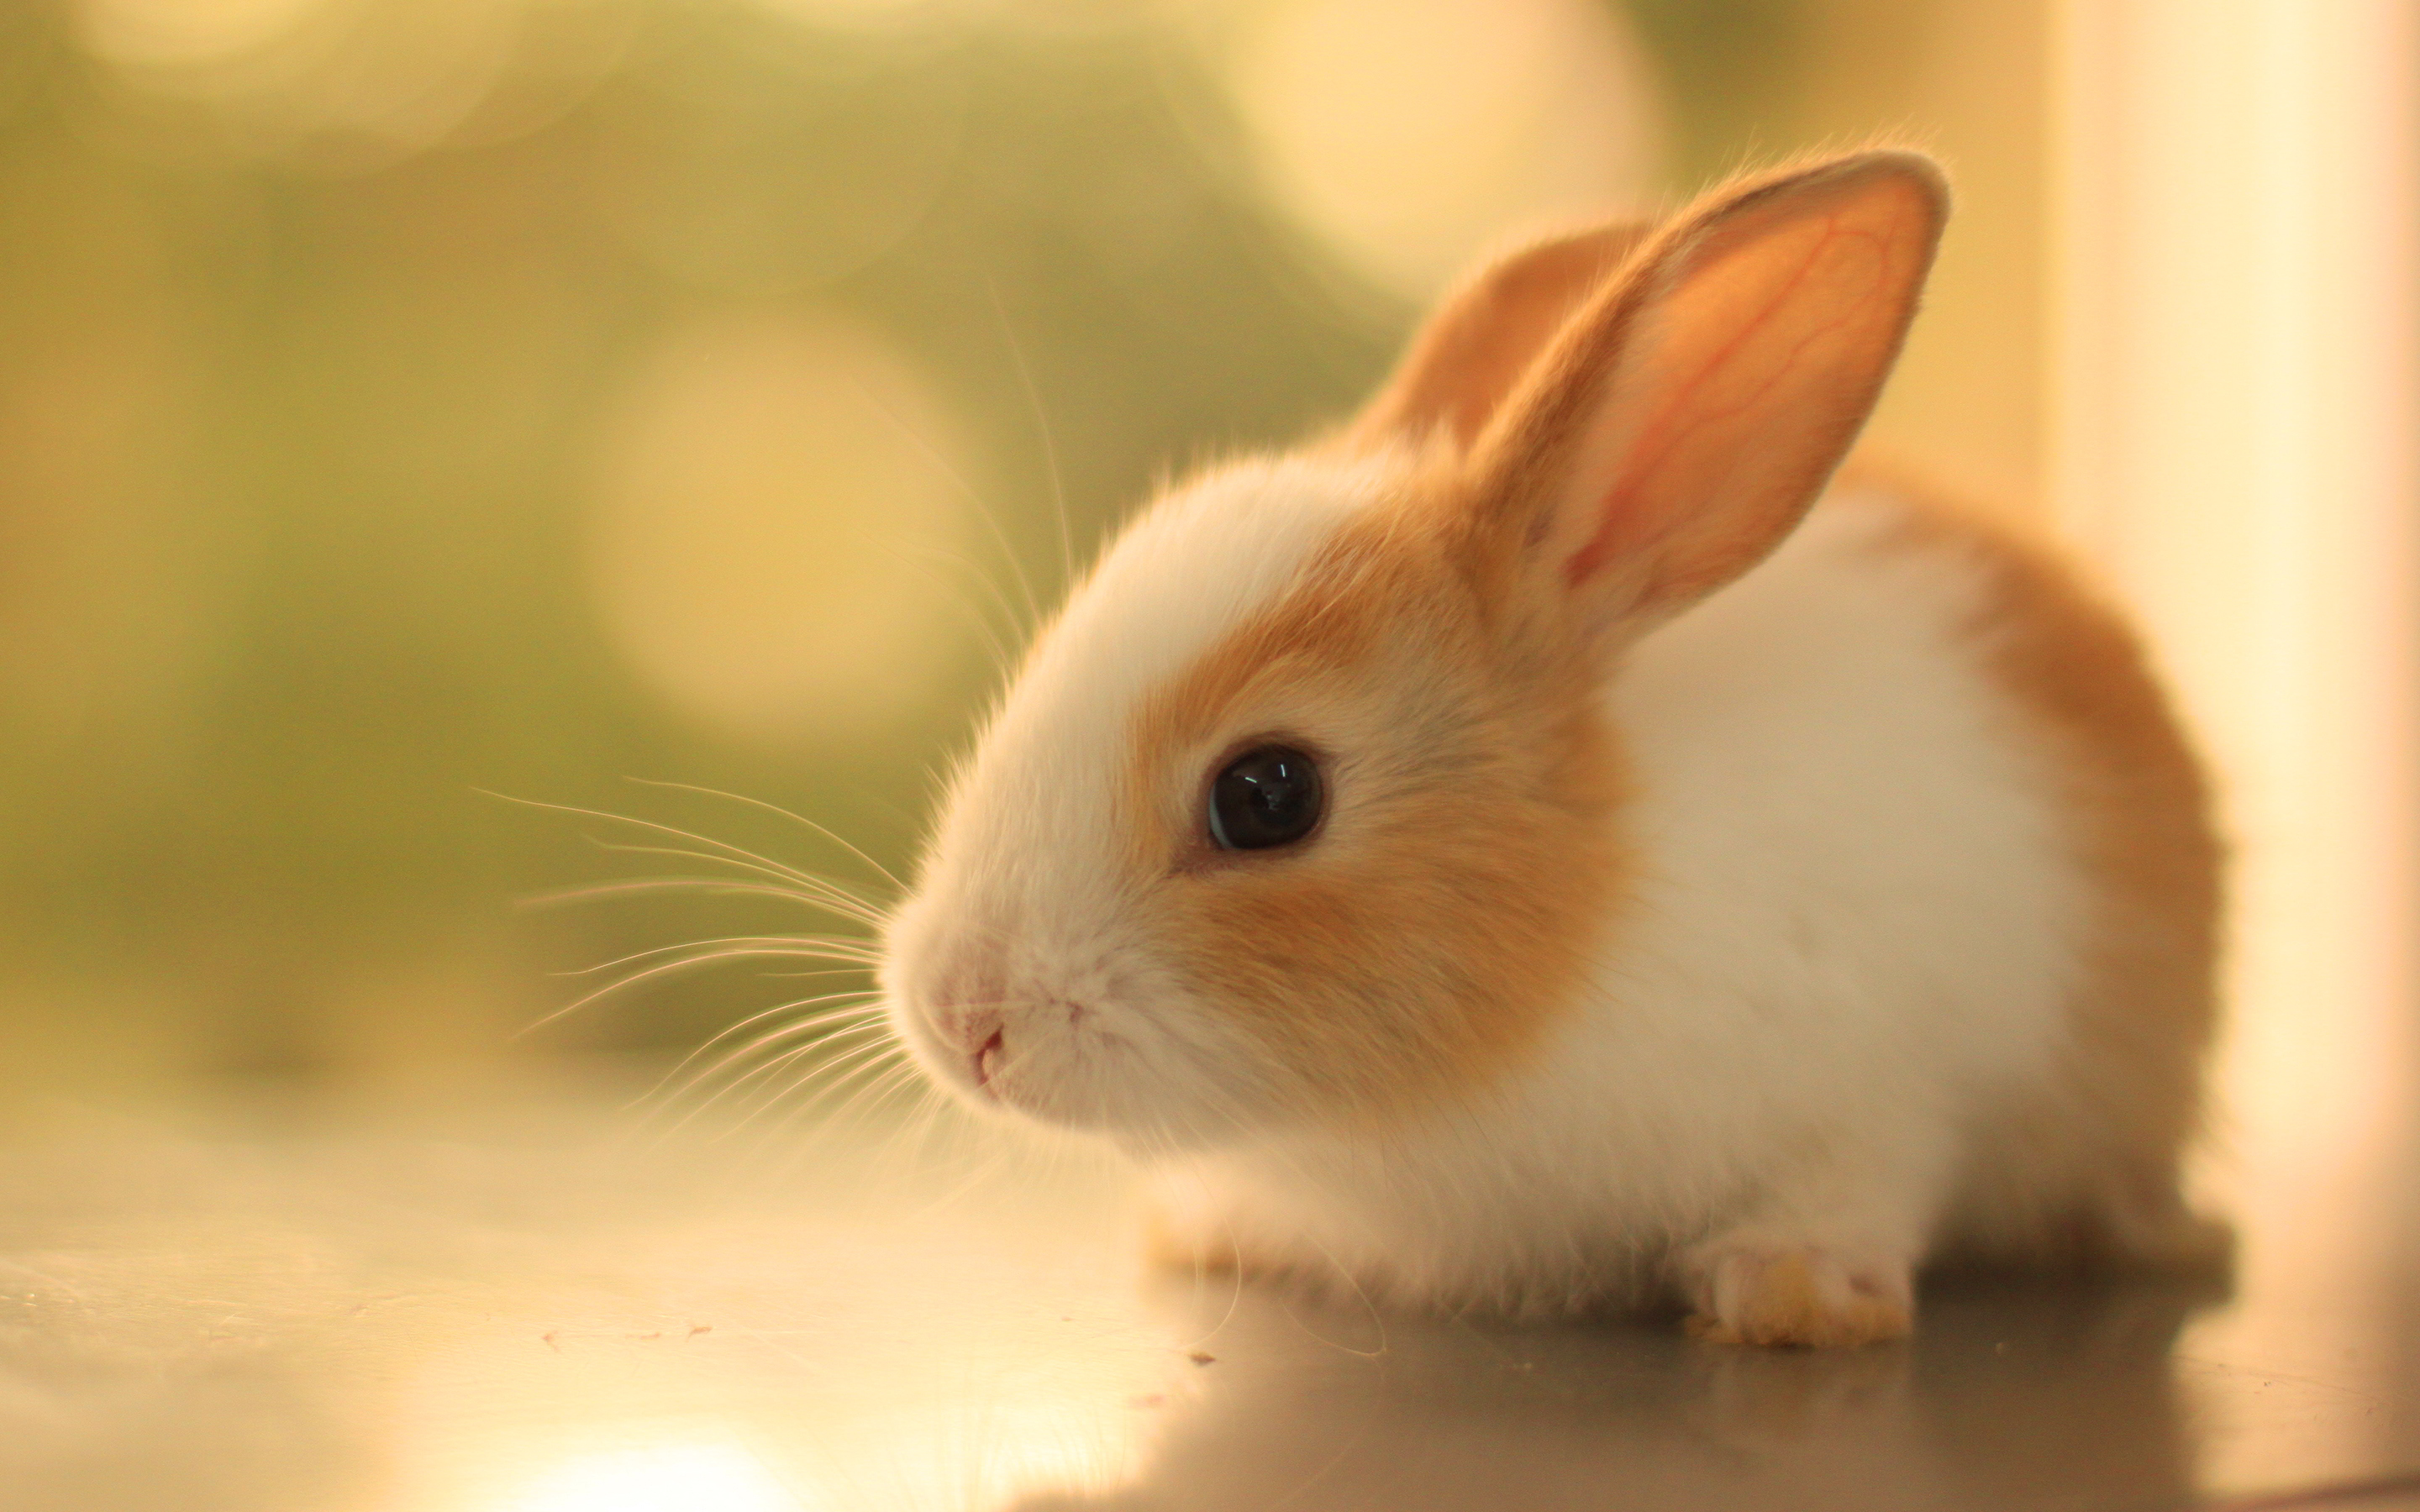 Cute bunny hd